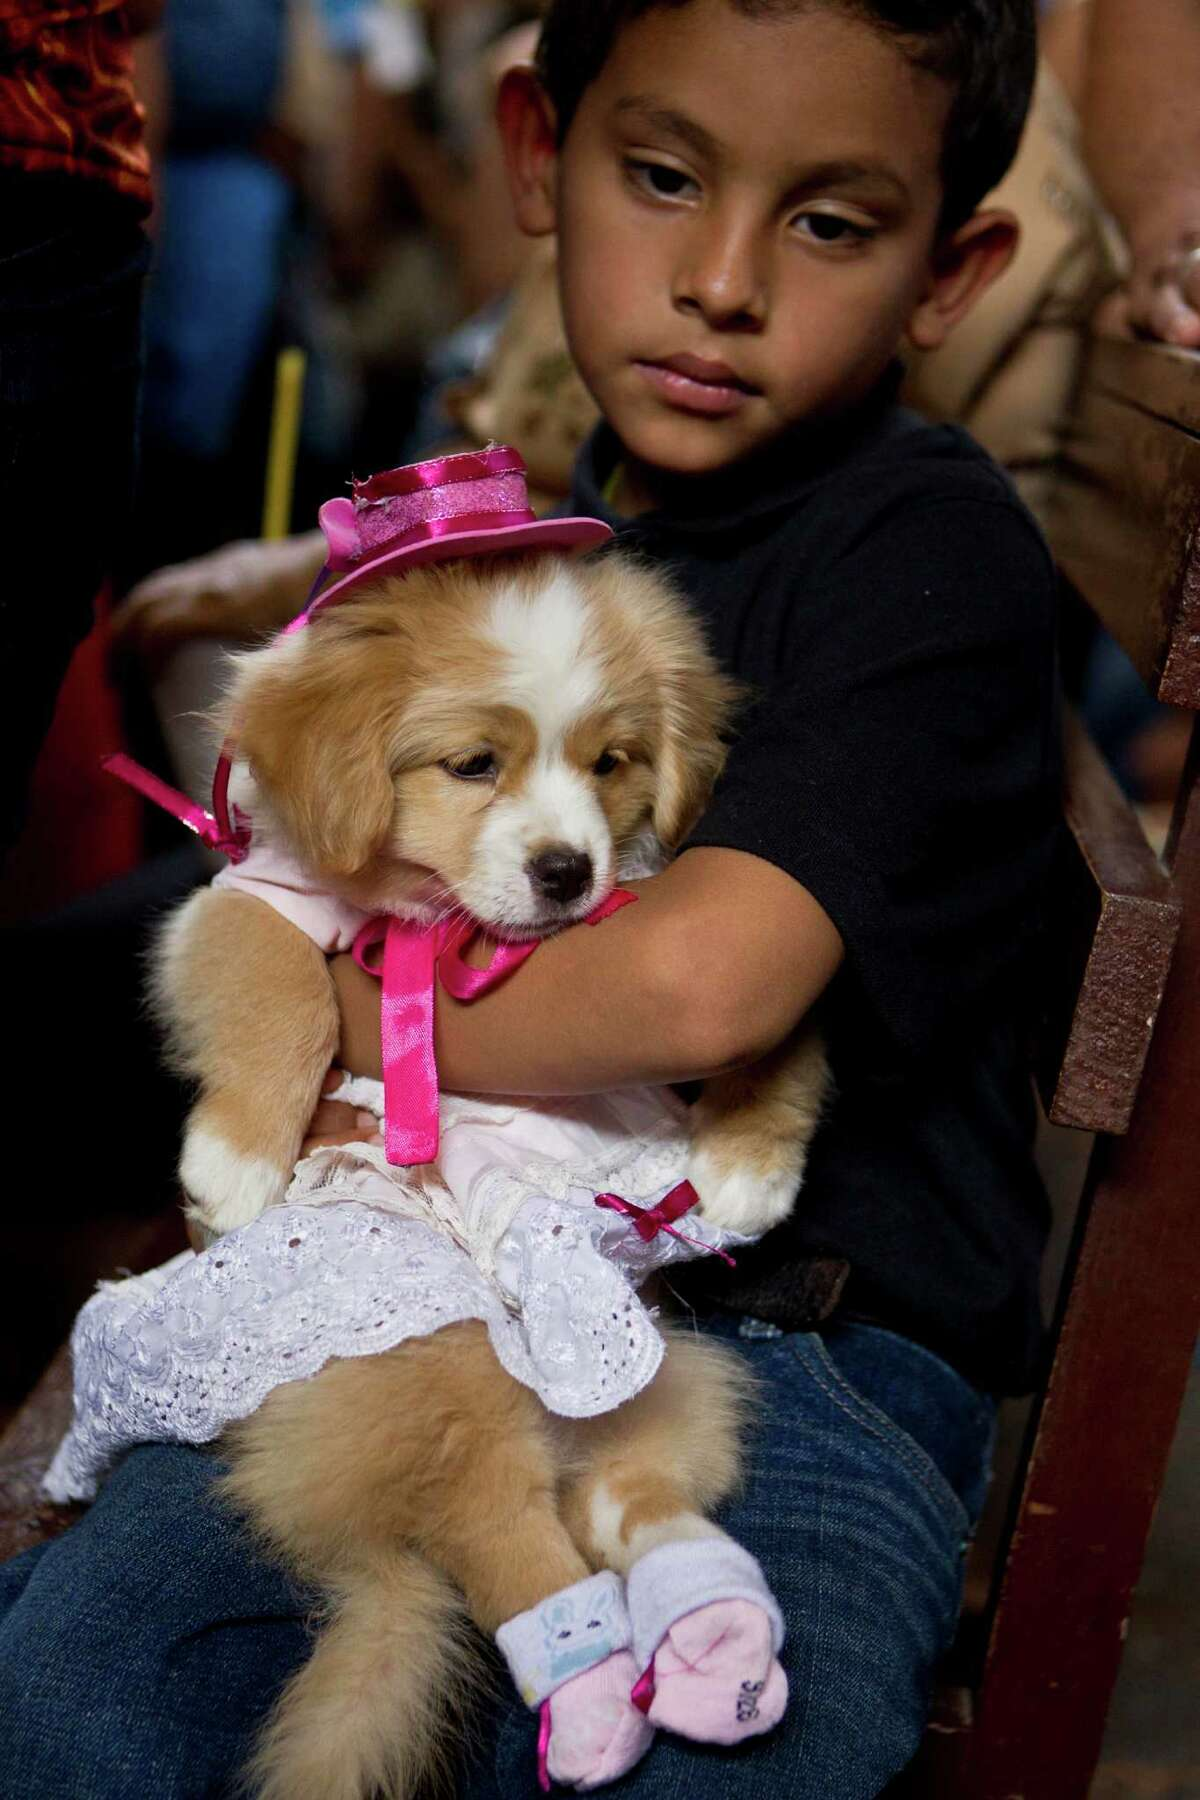 A boy holds his dog wearing a costume during an animal blessing ceremony in honor of Saint Lazarus, patron of the sick, at a church in the Monimbo neighborhood of Masaya, Nicaragua, Sunday, March 17, 2013. Catholics in Nicaragua associate Saint Lazarus with dogs, and dress up their pets for a Catholic blessing, asking the saint to keep their dogs healthy.